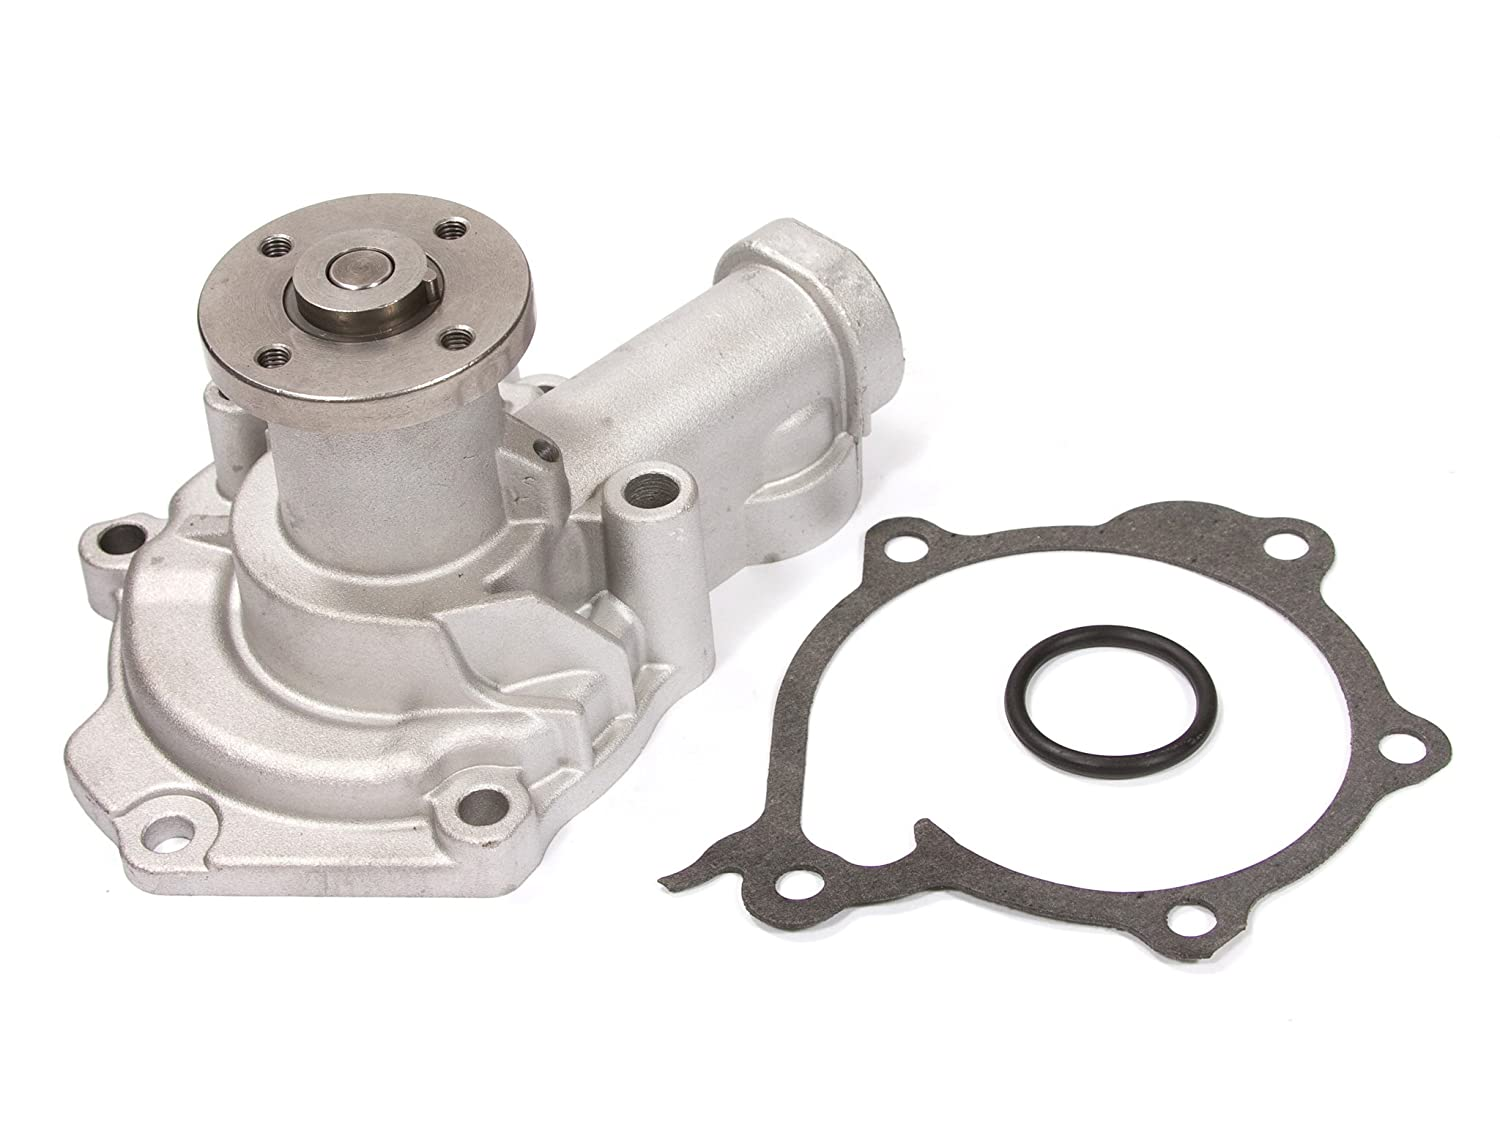 Amazon.com: Evergreen TBK313WP 99-05 Kia Optima Hyundai Sonata Santa Fe G4JS Timing Belt Kit GMB Water Pump: Automotive